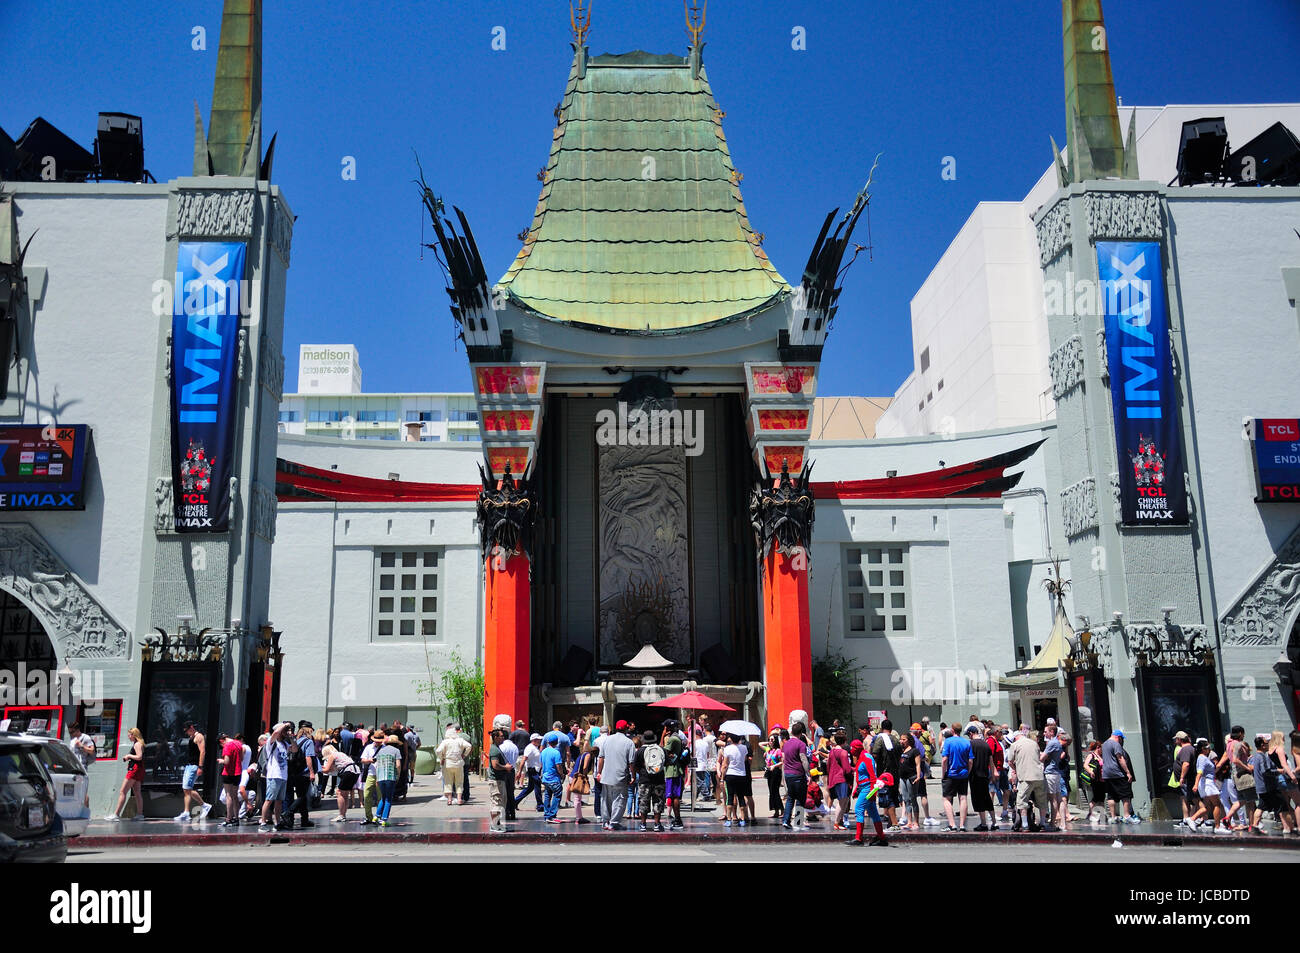 May 21, 2017.  Hollywood, California.  Hundreds of tourists outside of the landmark iconic Chinese theater exterior - Stock Image